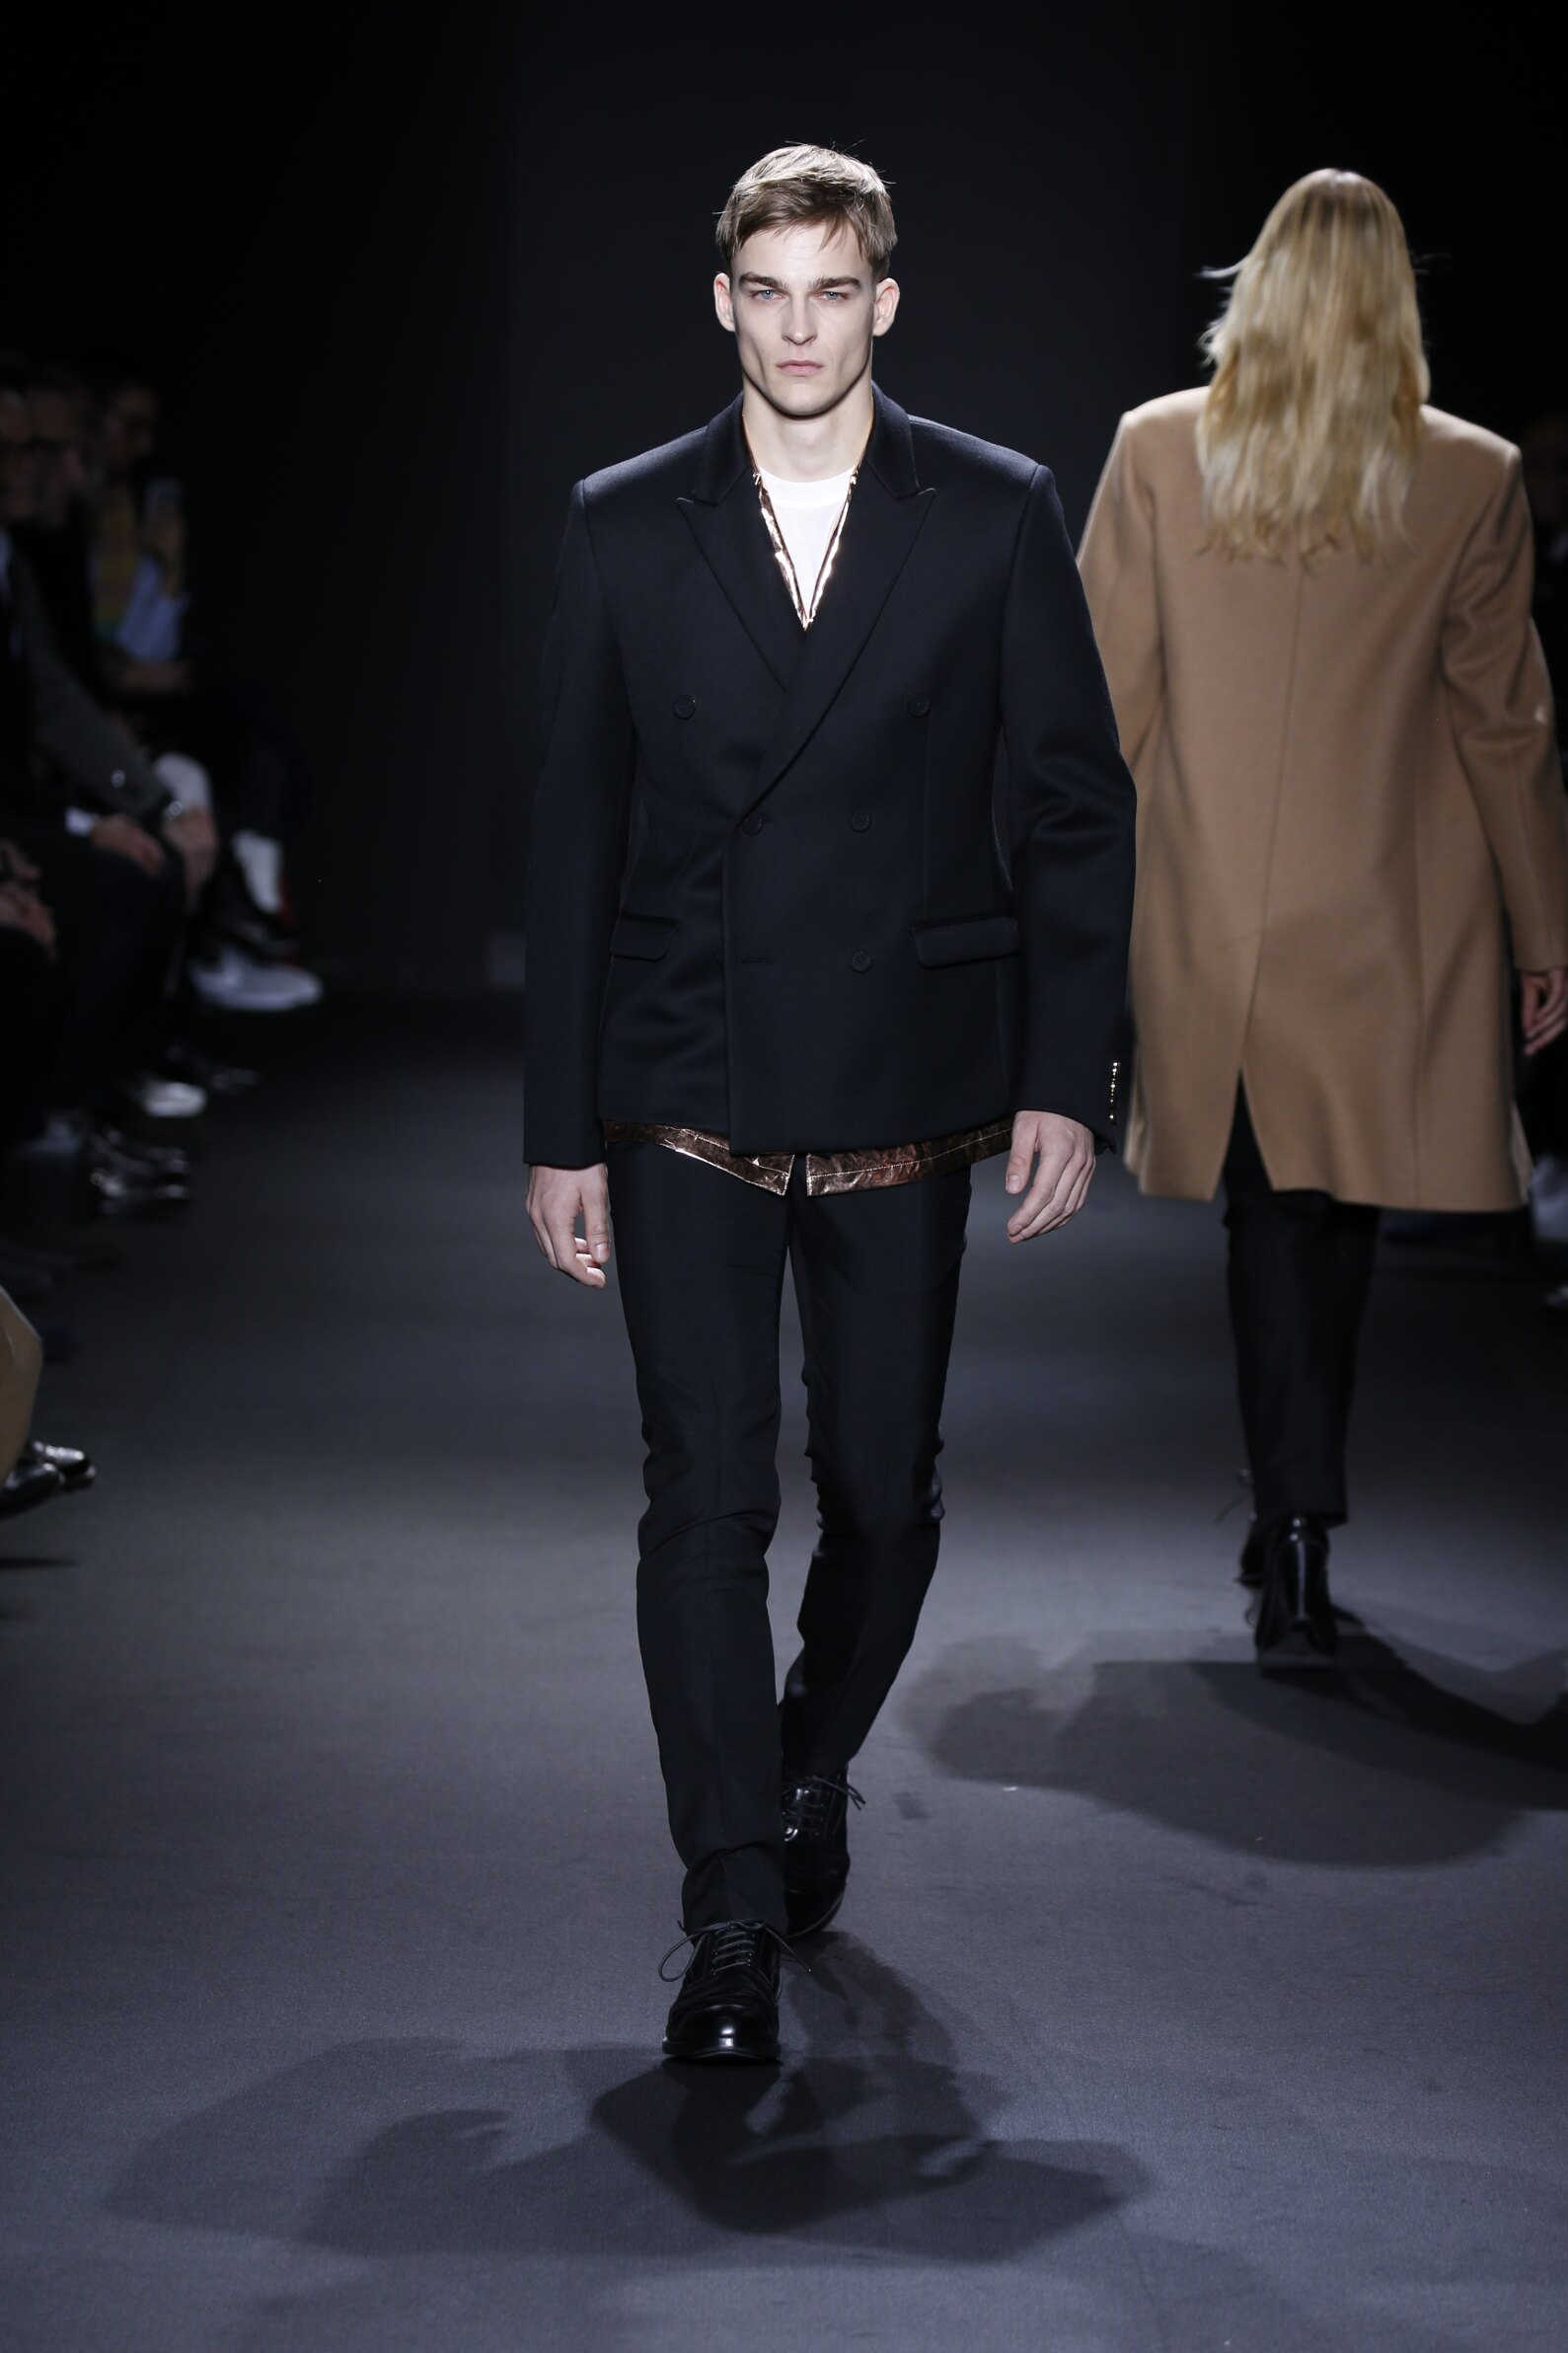 CALVIN KLEIN COLLECTION MEN'S FALL WINTER 2016-17 | The